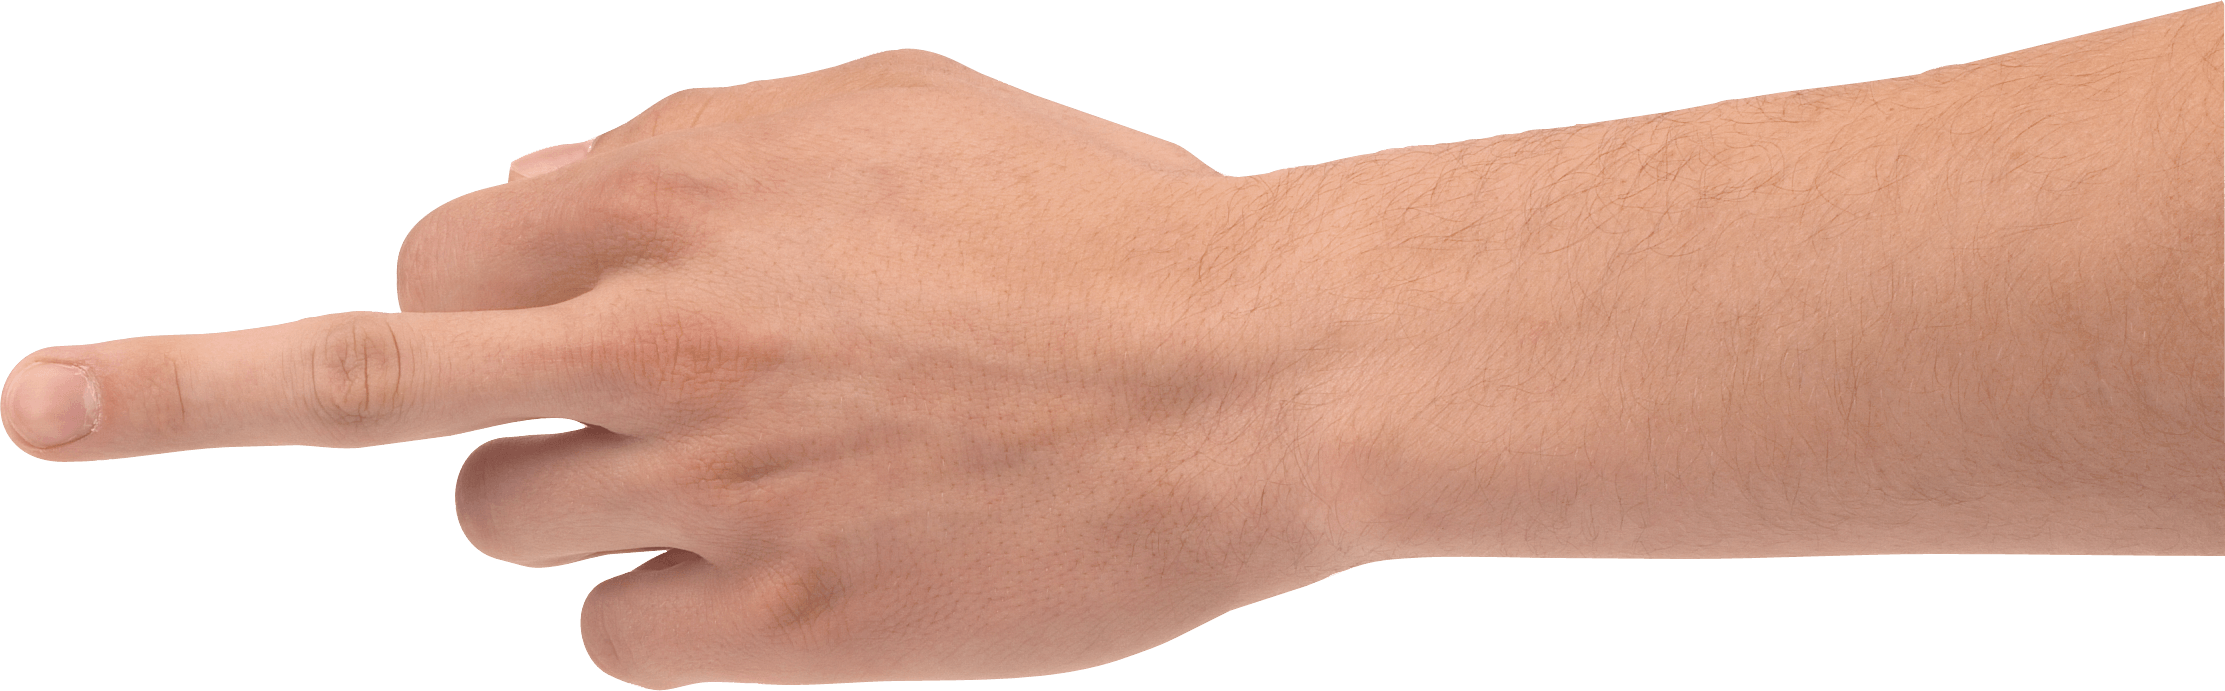 One Finger Hand Hands Png Hand Image  PNG Image